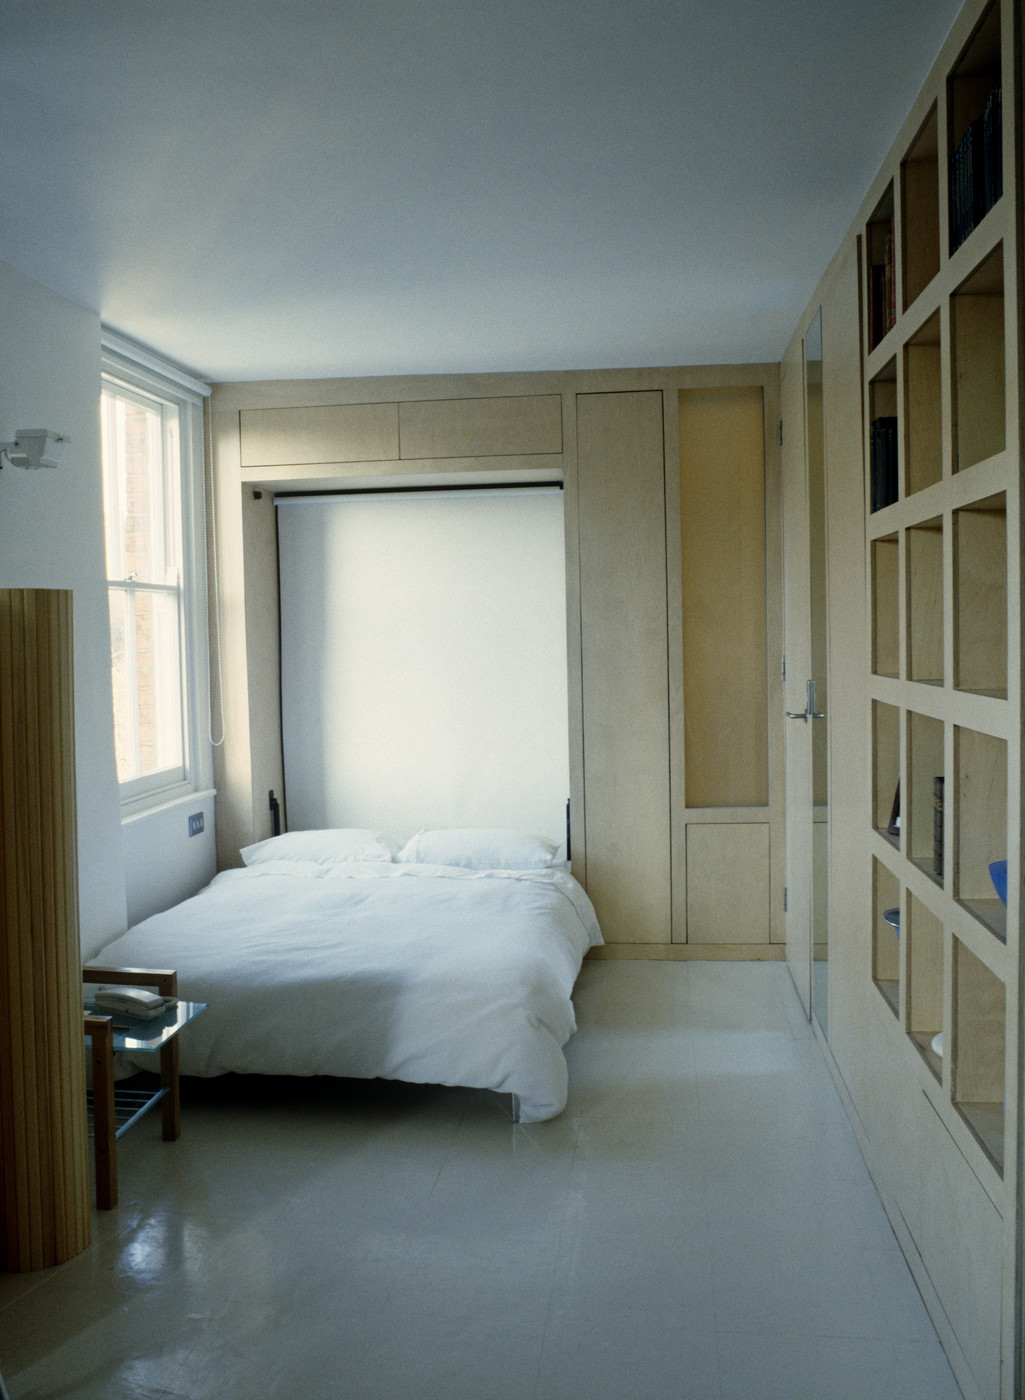 Studio apartment with a Murphy bed (photo via Lonny)